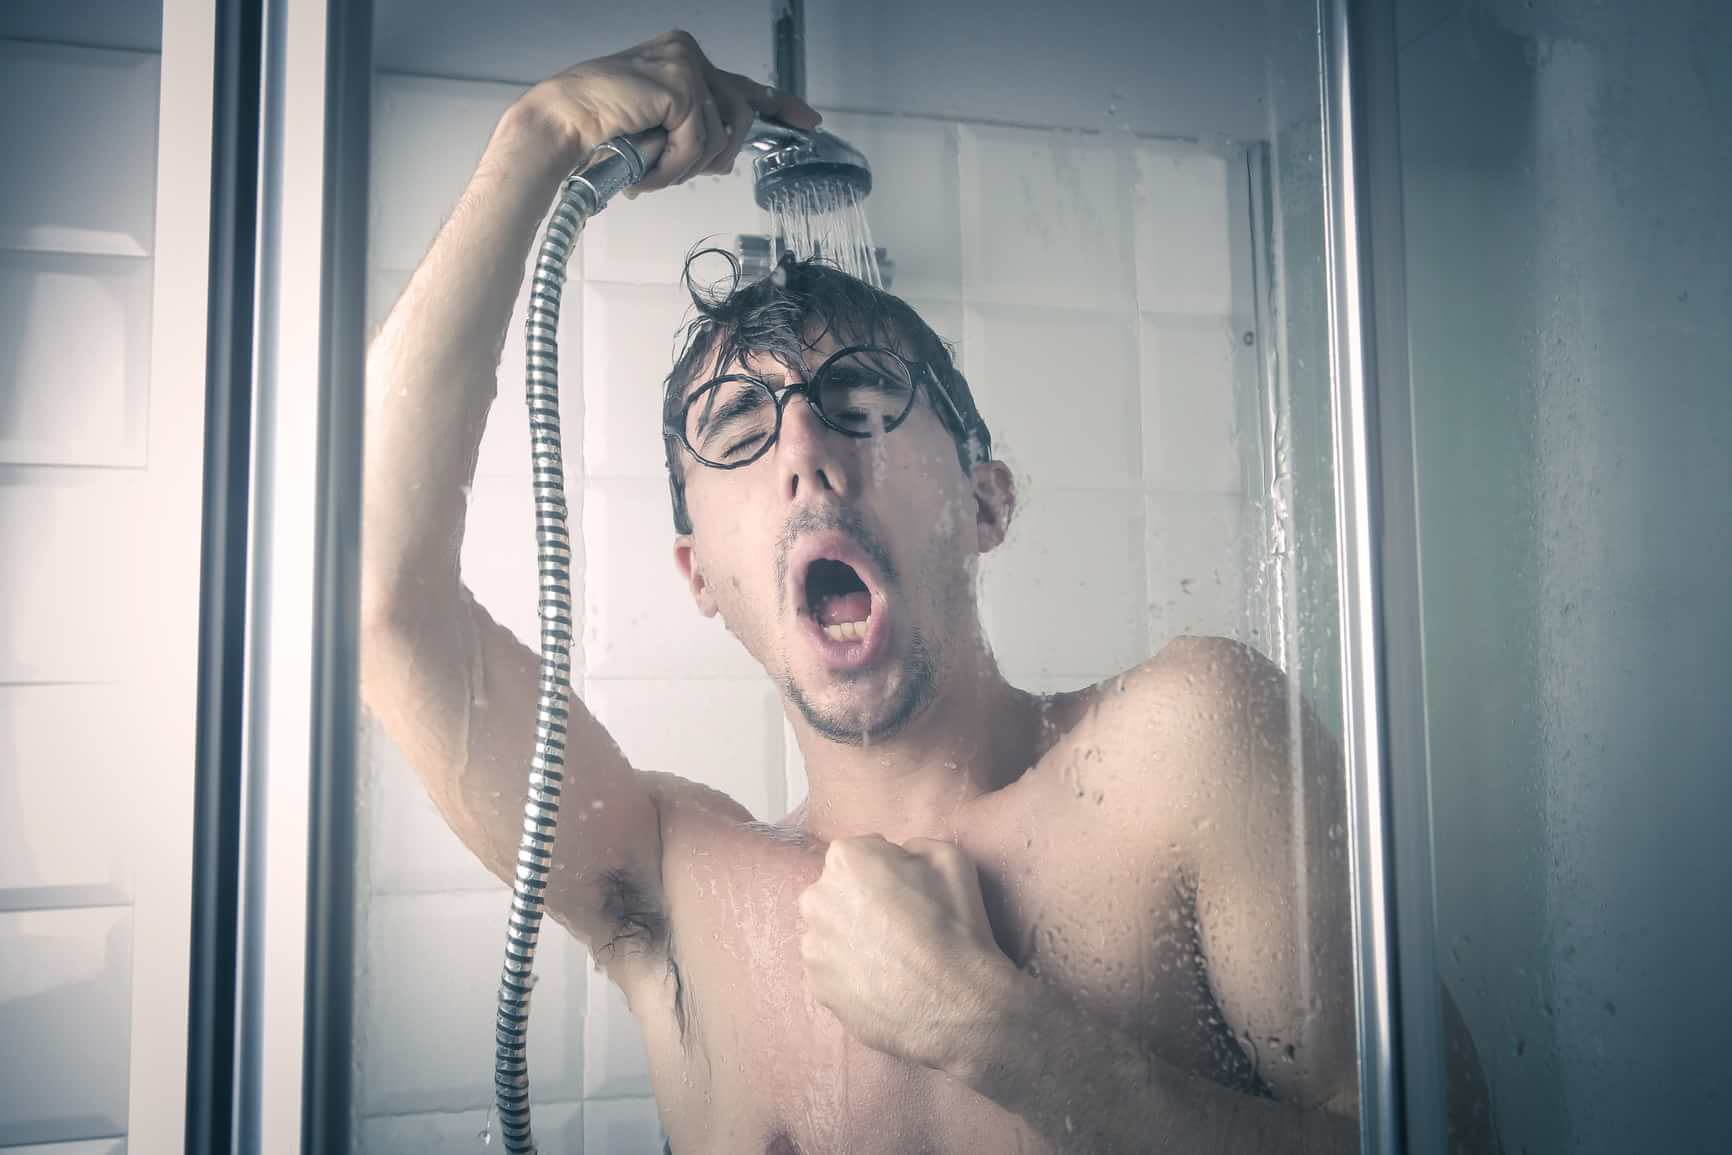 Have you ever tried an ice cold shower in the morning? They are extremely healthy just a bit hard to deal with. Are you ready to try them?